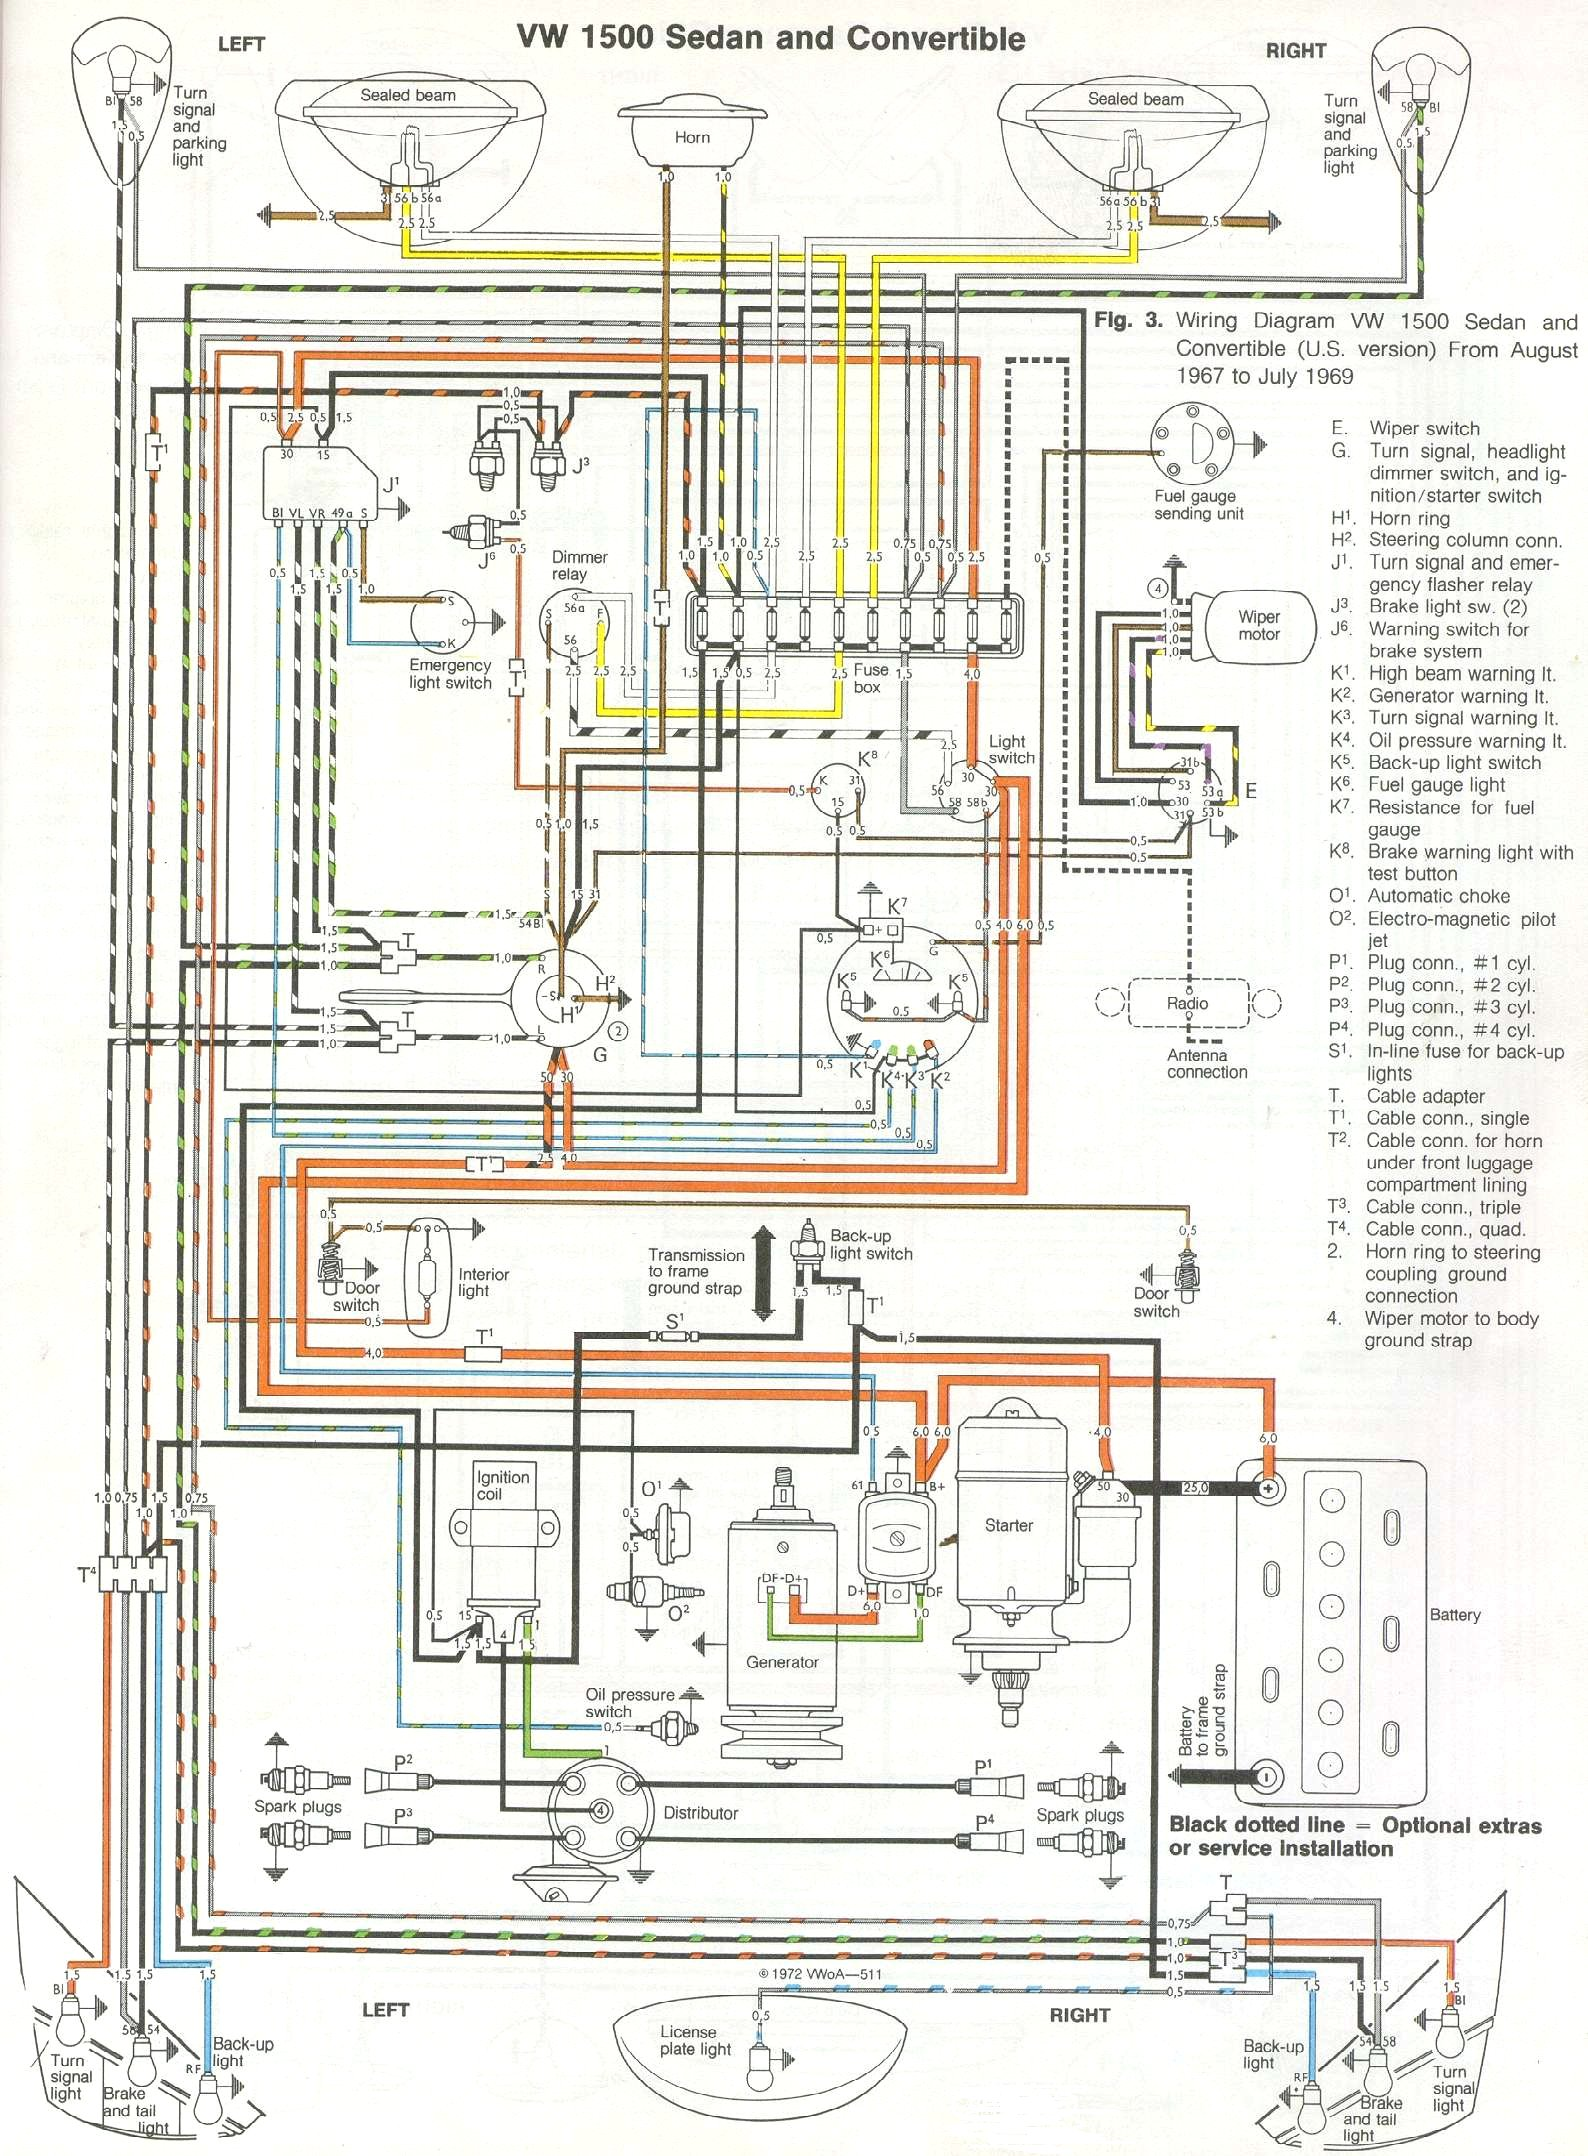 bug_6869 1969 71 beetle wiring diagram thegoldenbug com 1969 bug wiring diagram at creativeand.co